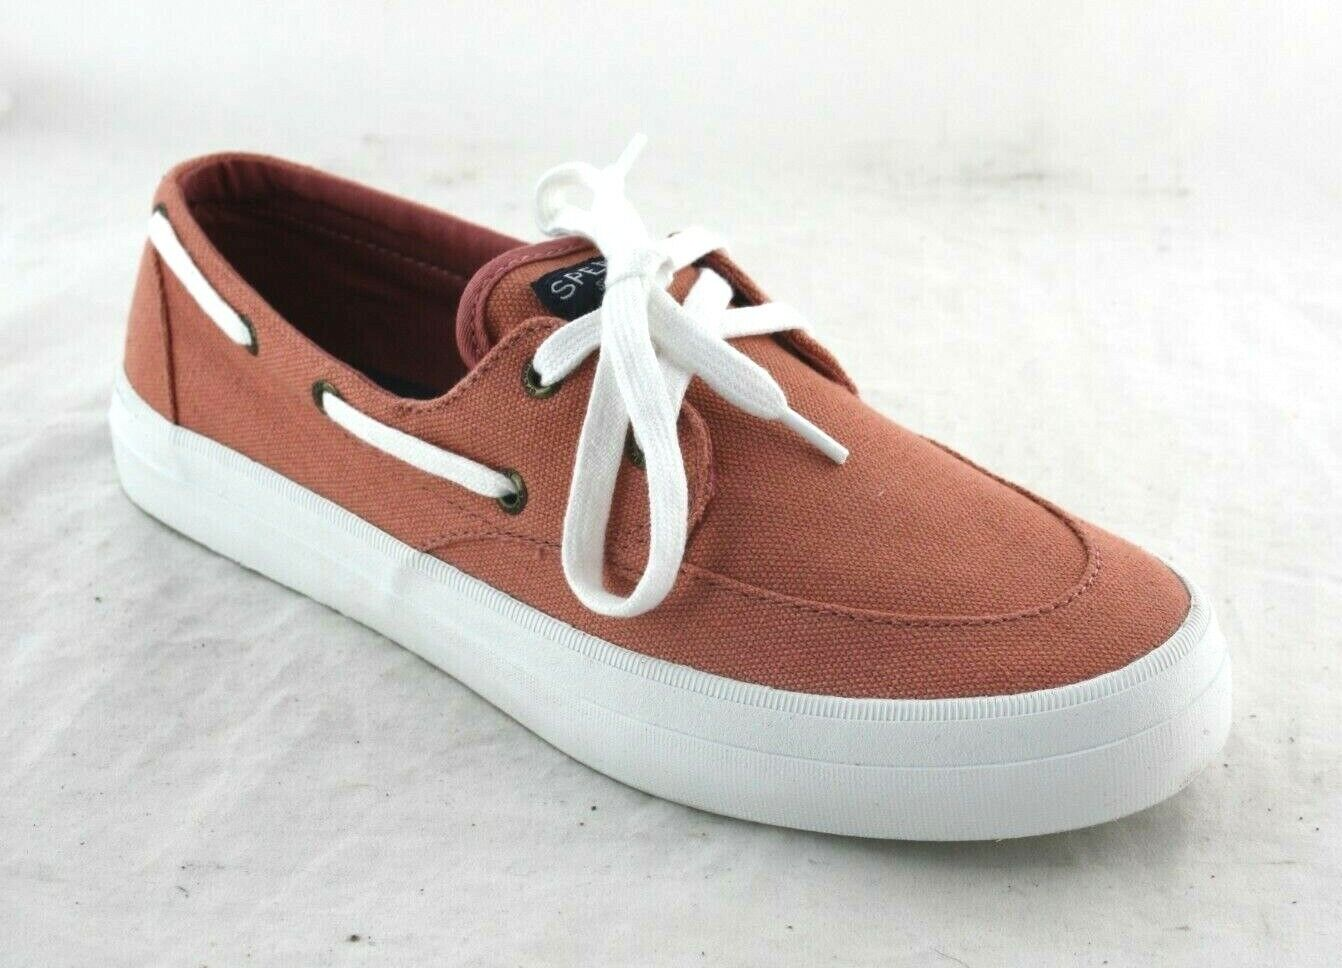 SPERRY Crest Boat Sneaker In Washed Red Fabric STS83200 WOMEN'S CASUAL SHOE SZ9H